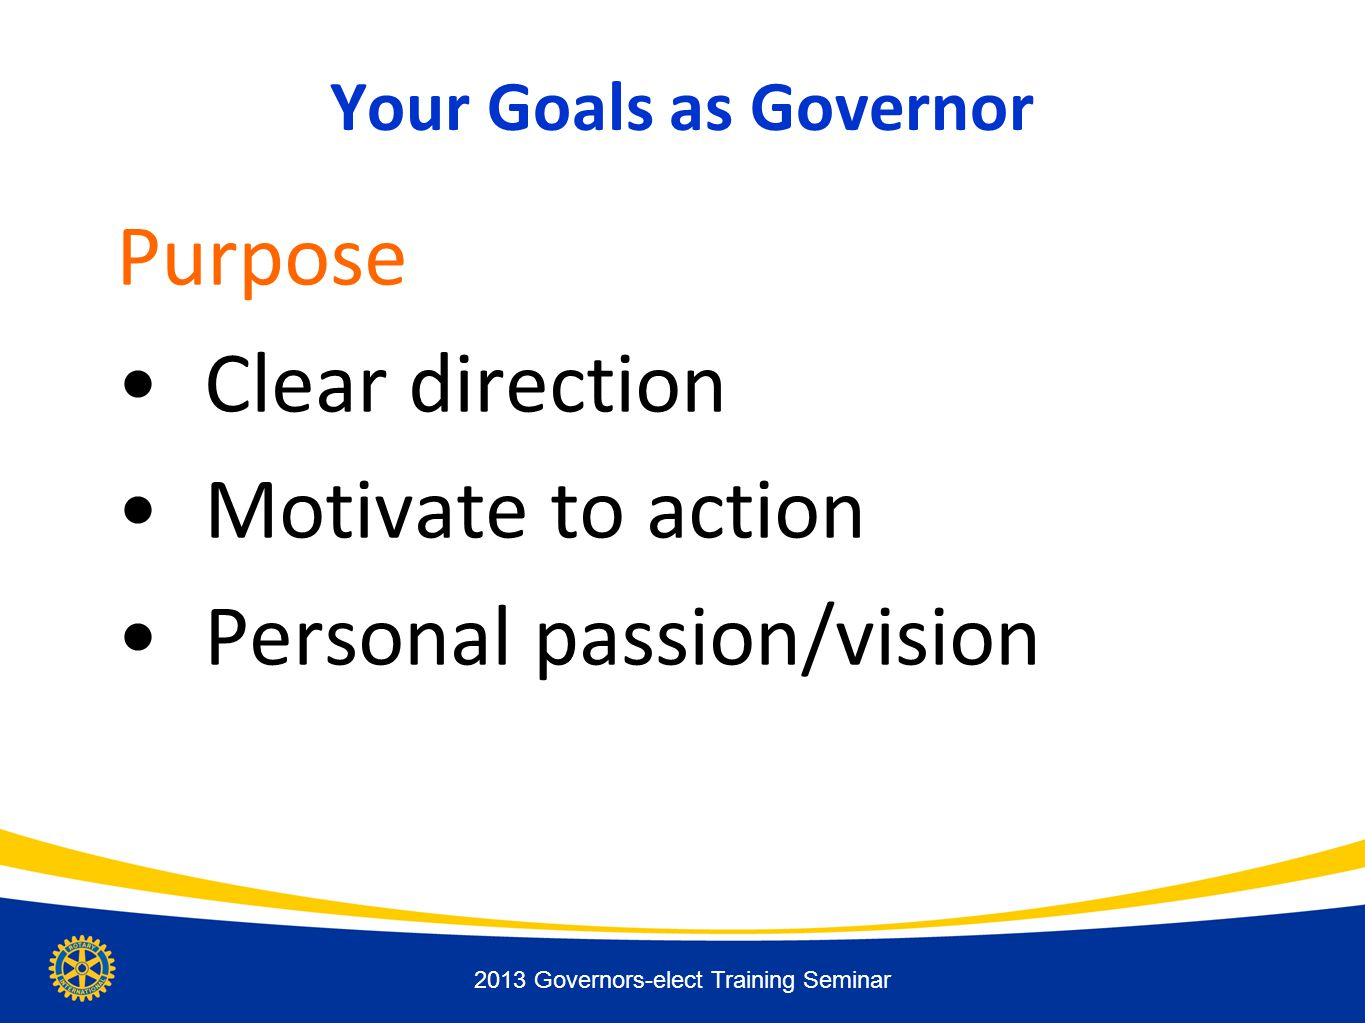 Your Goals as Governor Purpose Clear direction Motivate to action Personal passion/vision 2013 Governors-elect Training Seminar